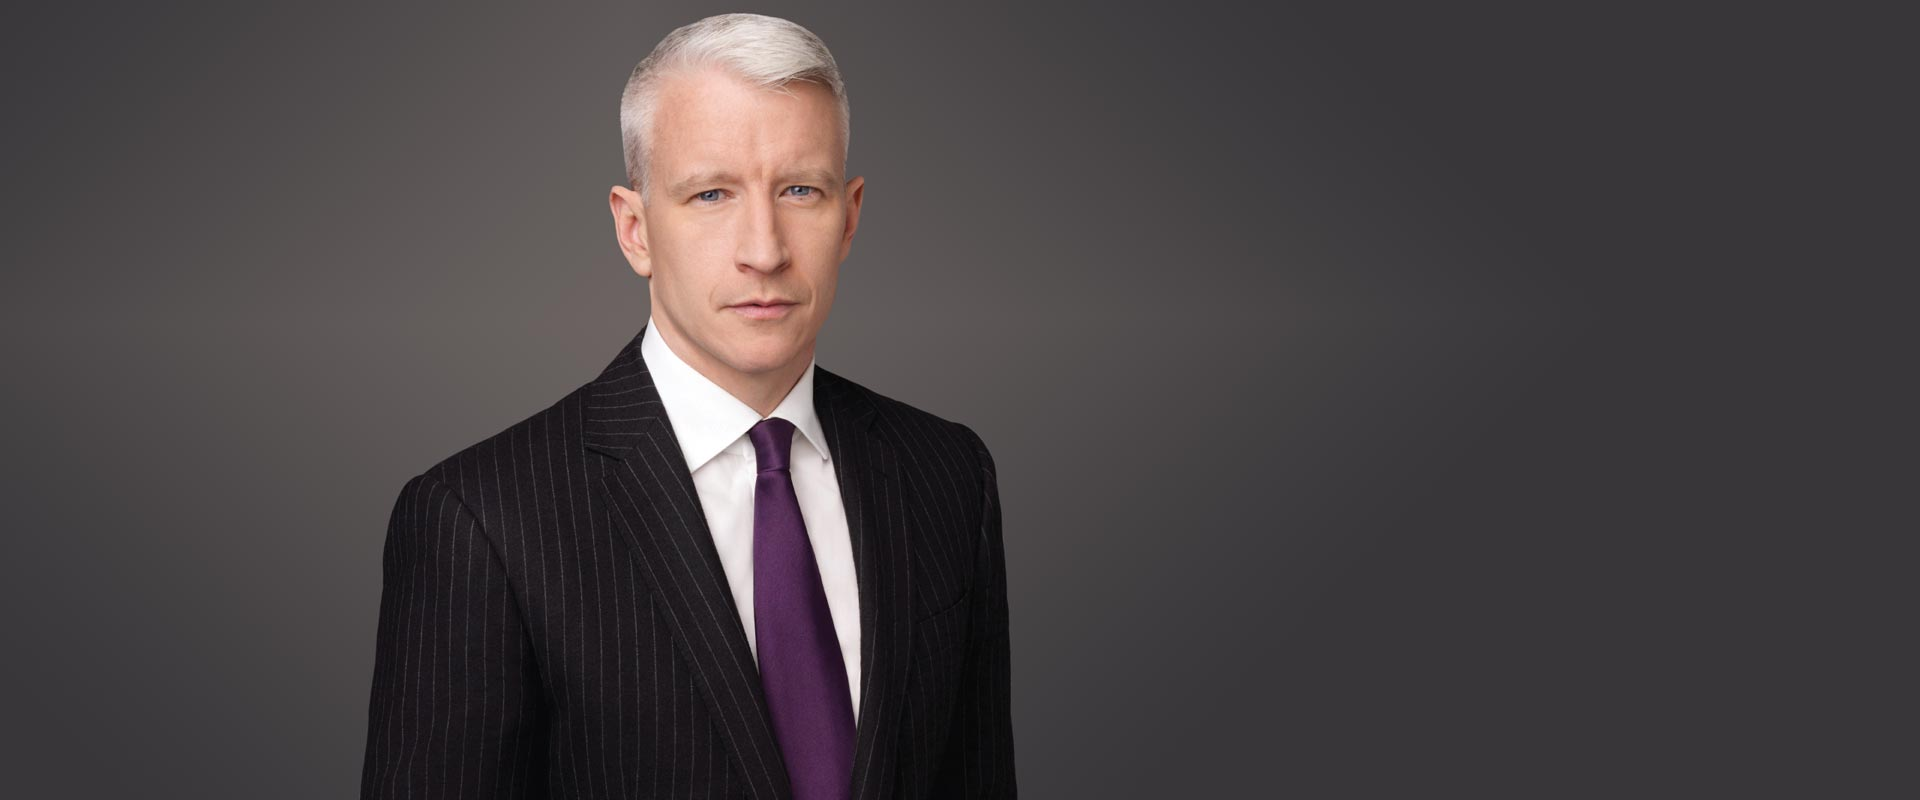 Anderson Cooper, Sept 15, 2019 at Centennial Concert Hall